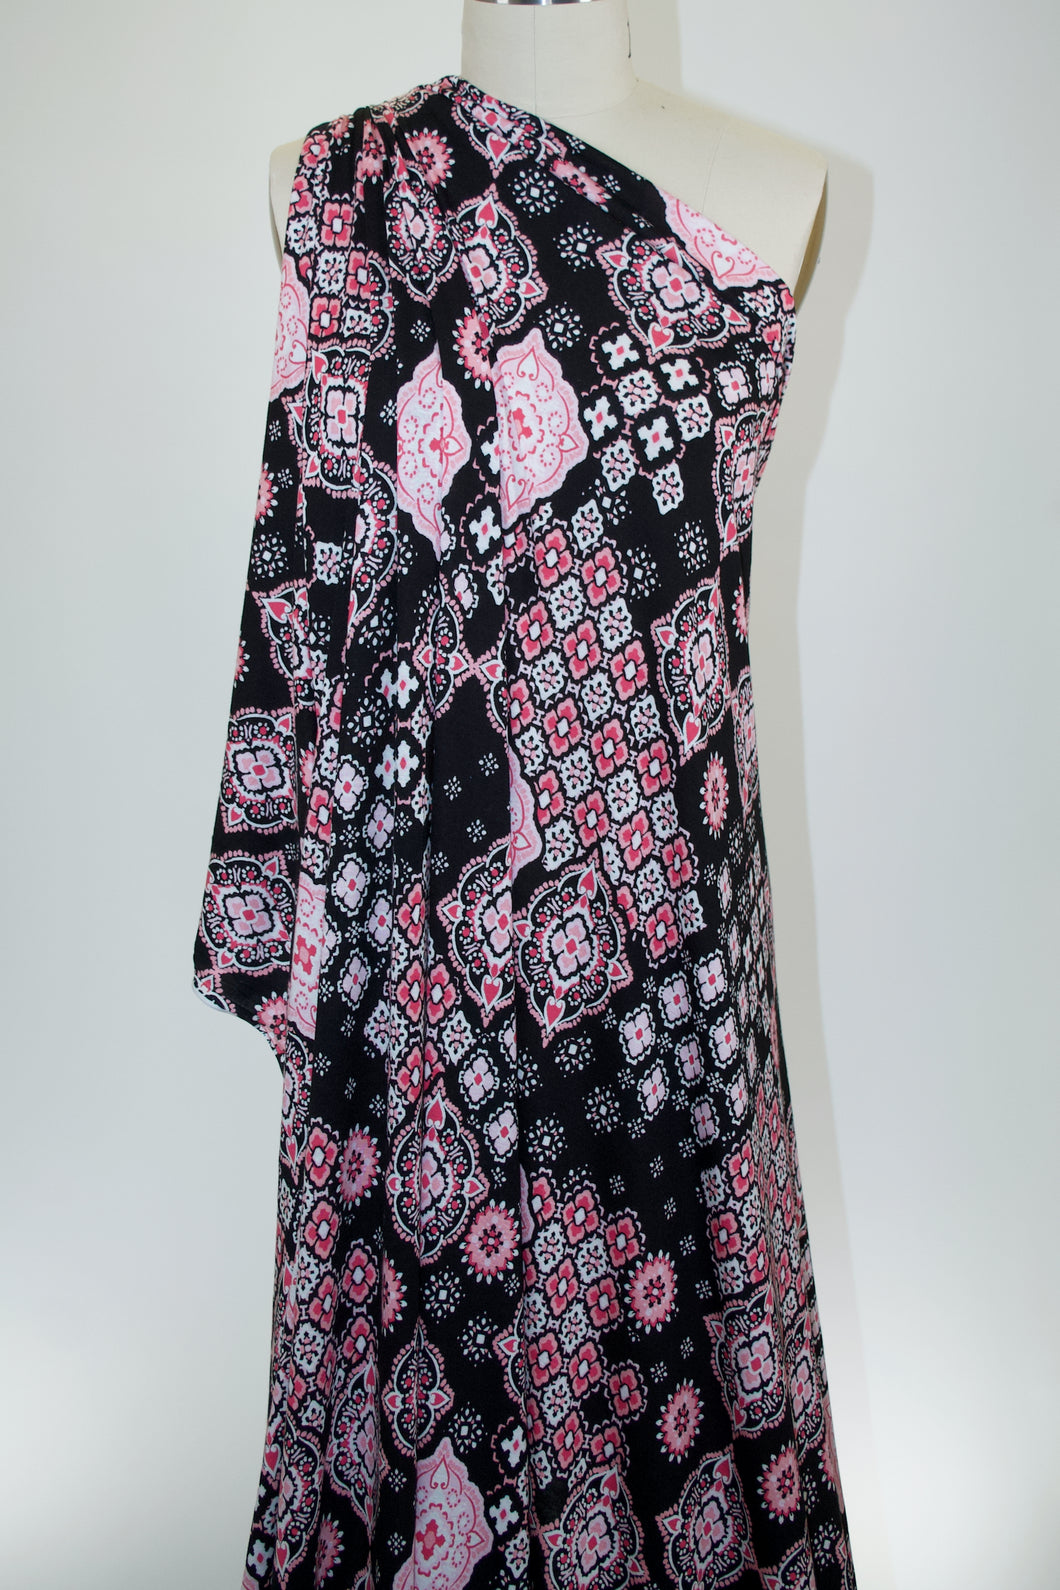 Marvelous Medallions Rayon Jersey - Pinks on Black